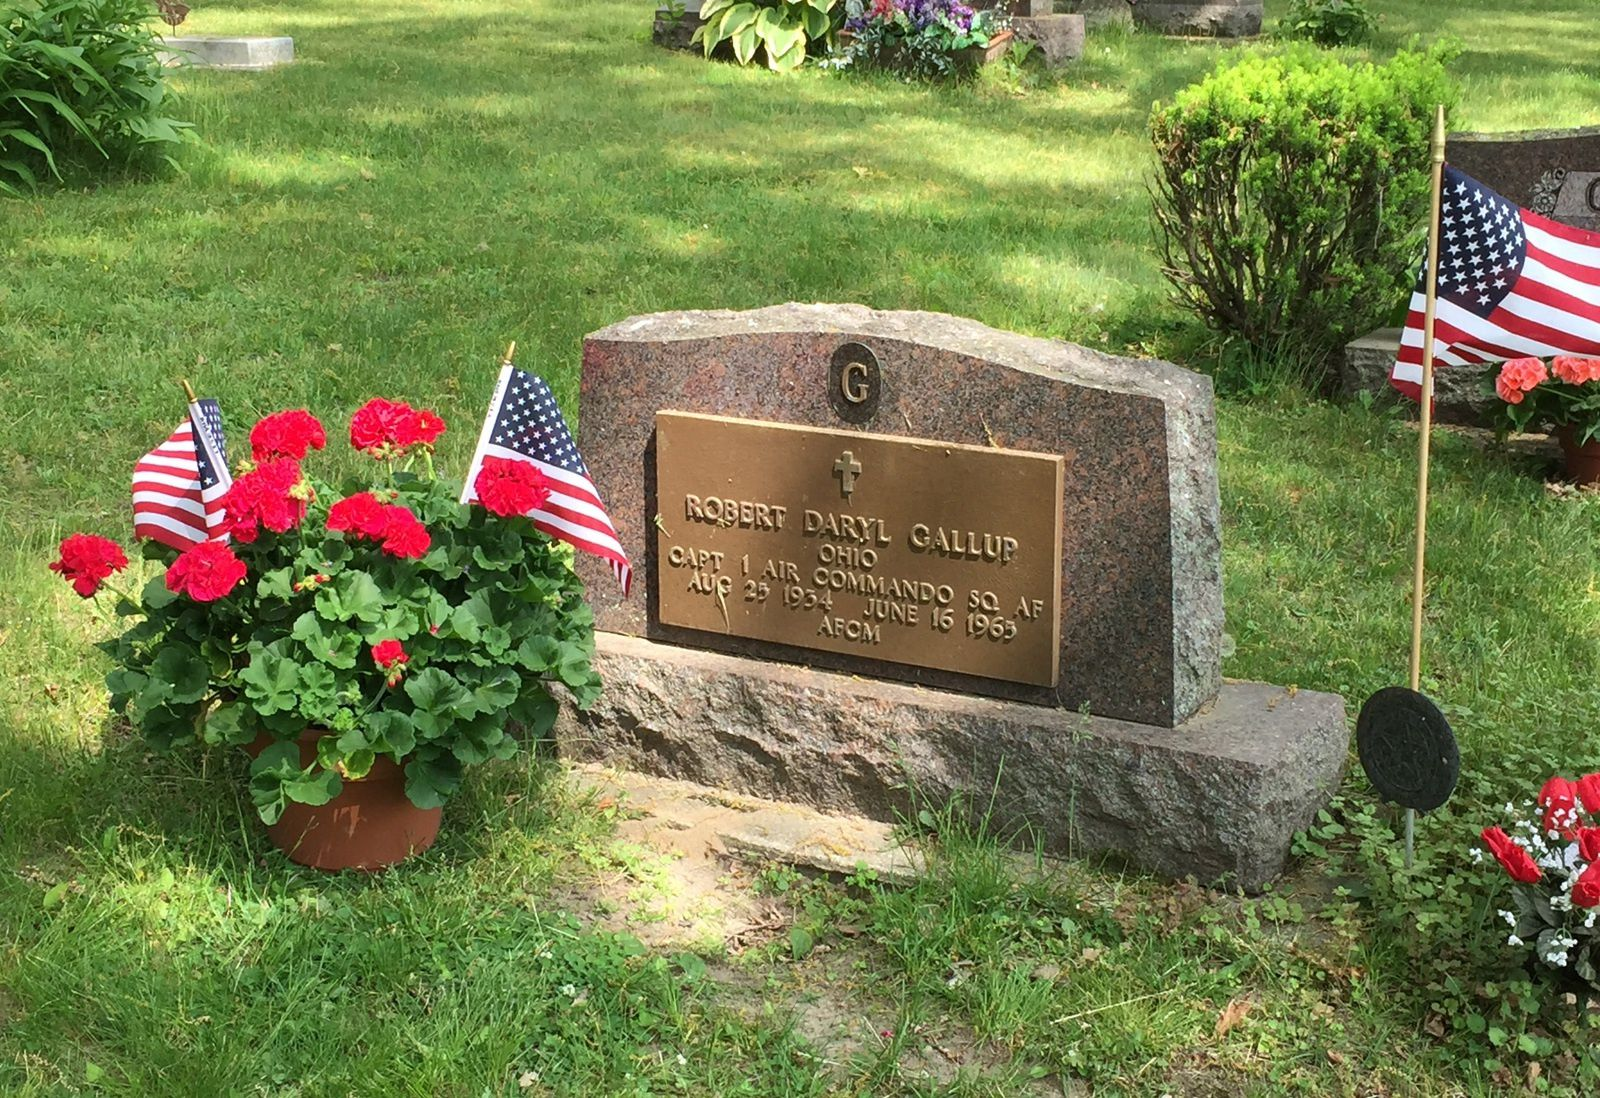 Capt. Gallup's grave in Oak Grove Cemetery, Morenci, Lenawee County, Michigan, USA. Photo by S Szepanski